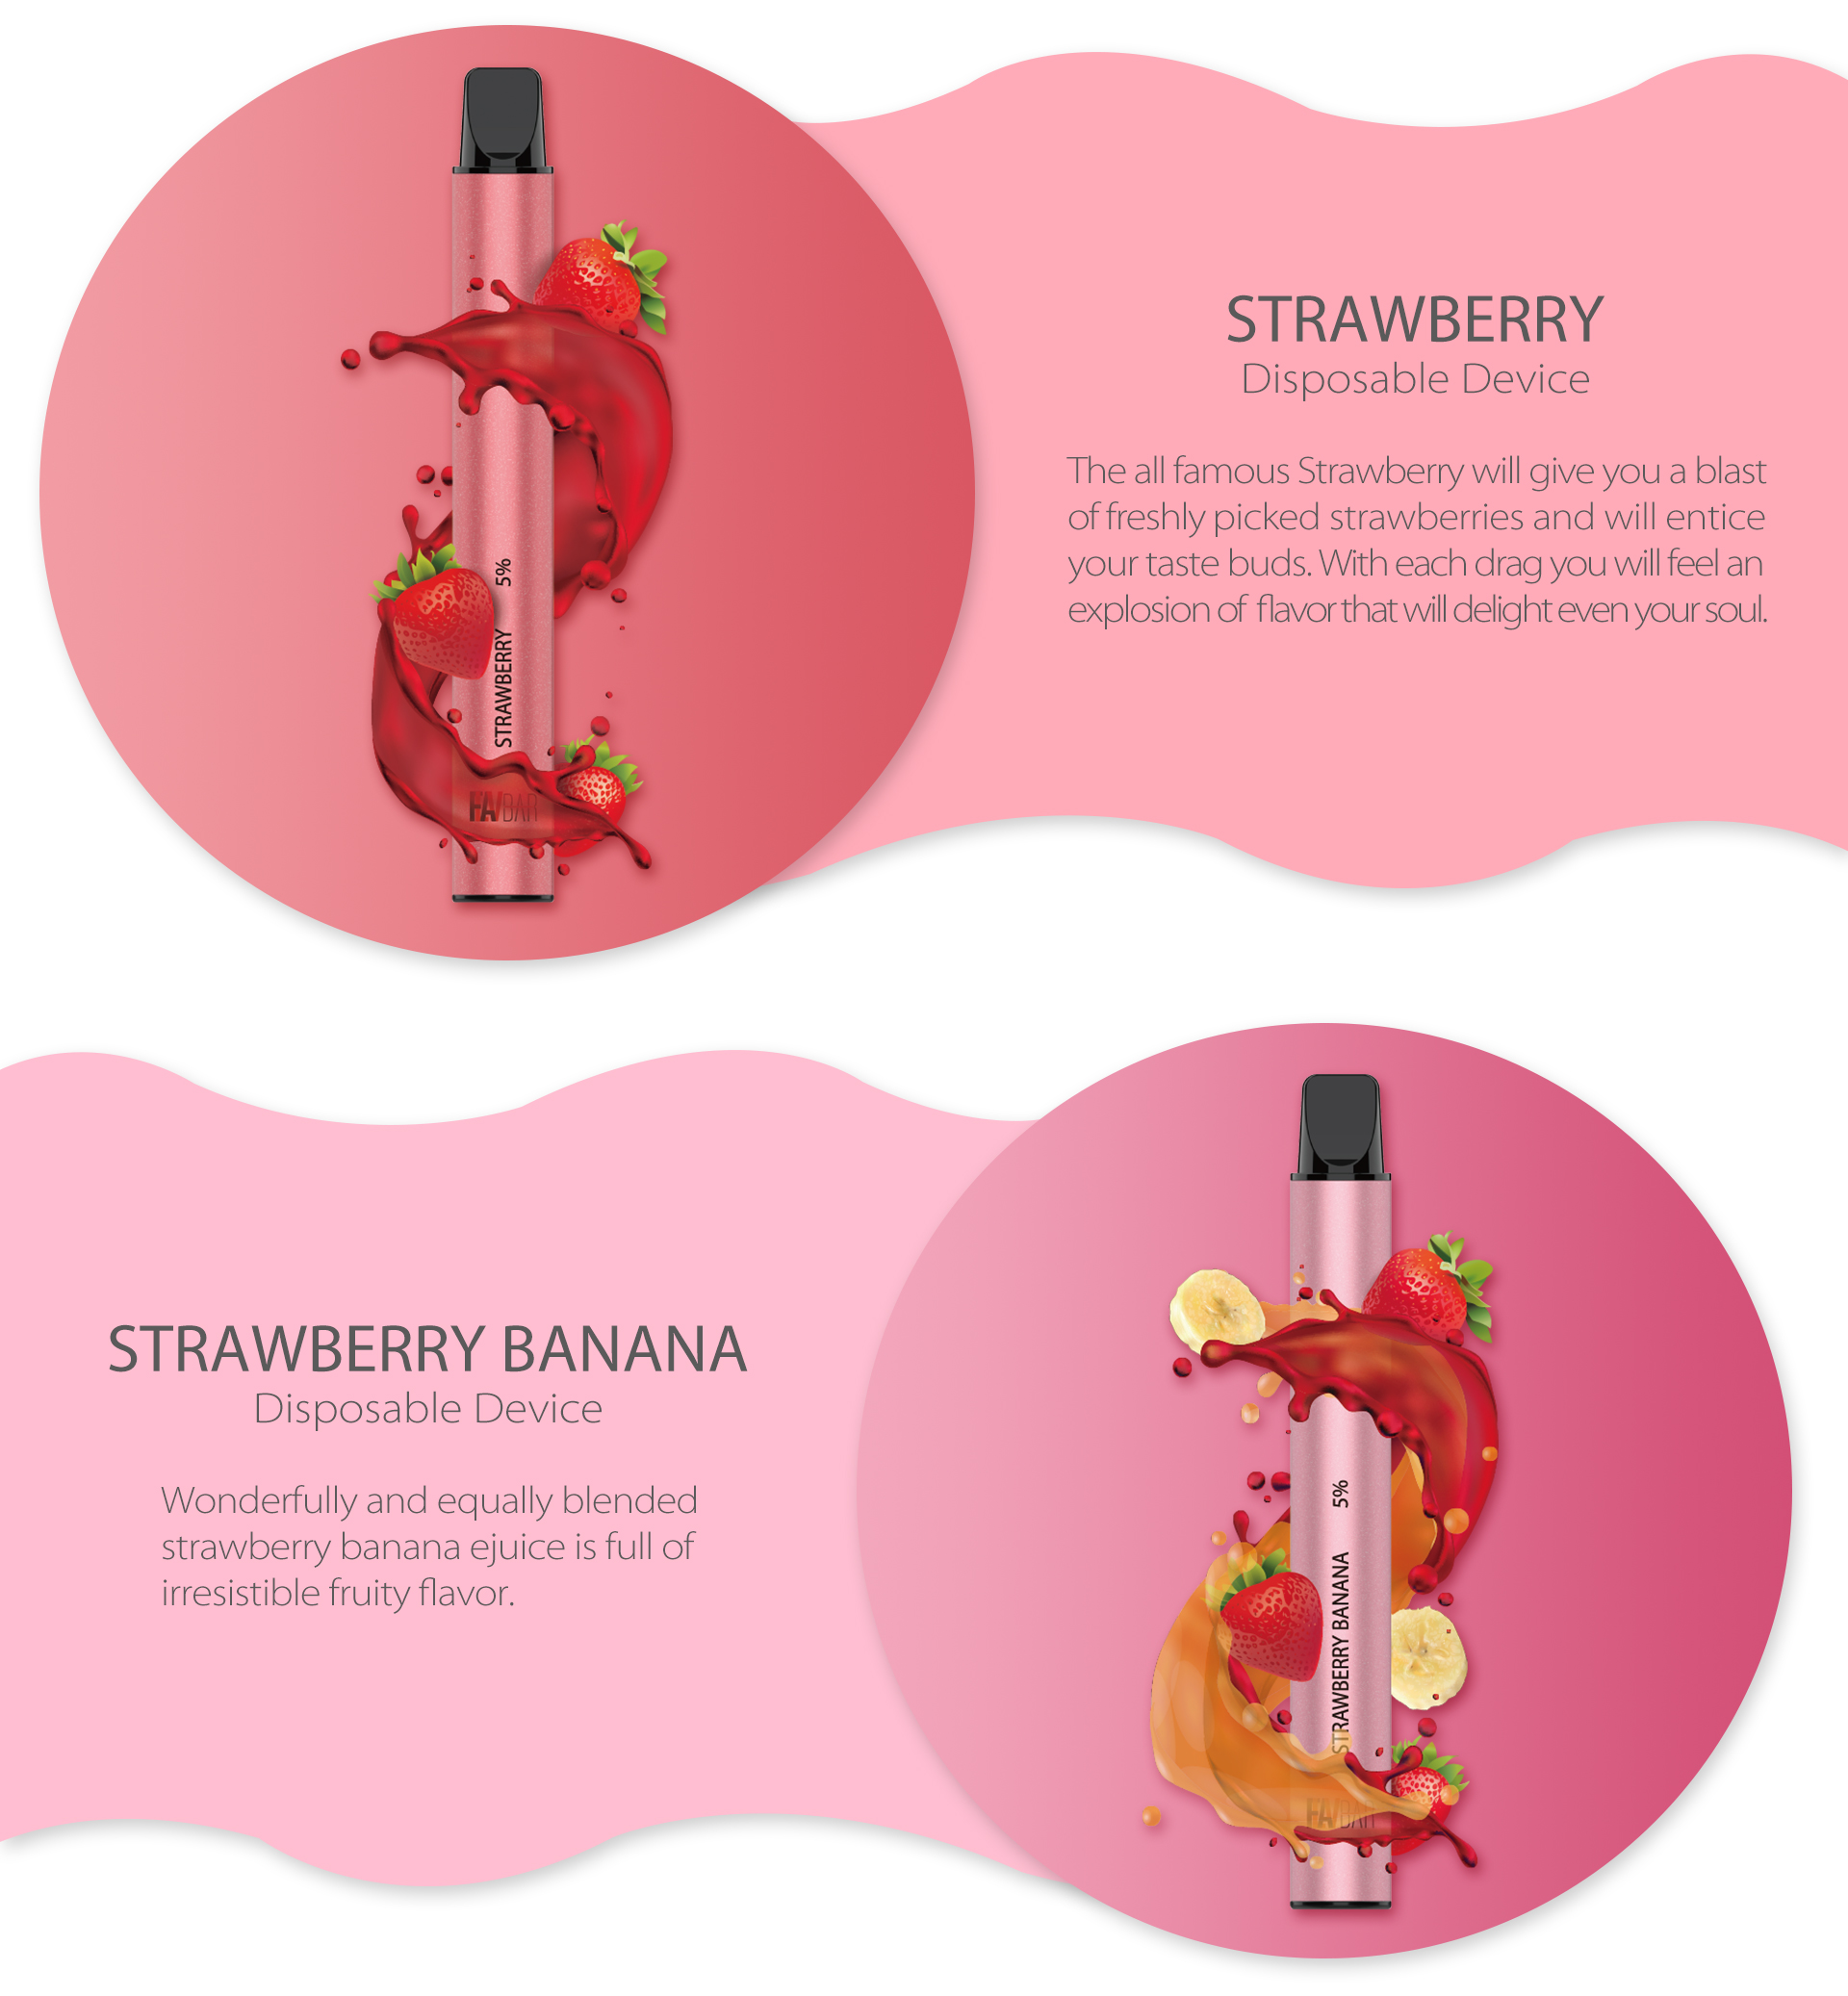 FLAVBAR v2 disposable device strawberry flavor and strawberry banana flavor.